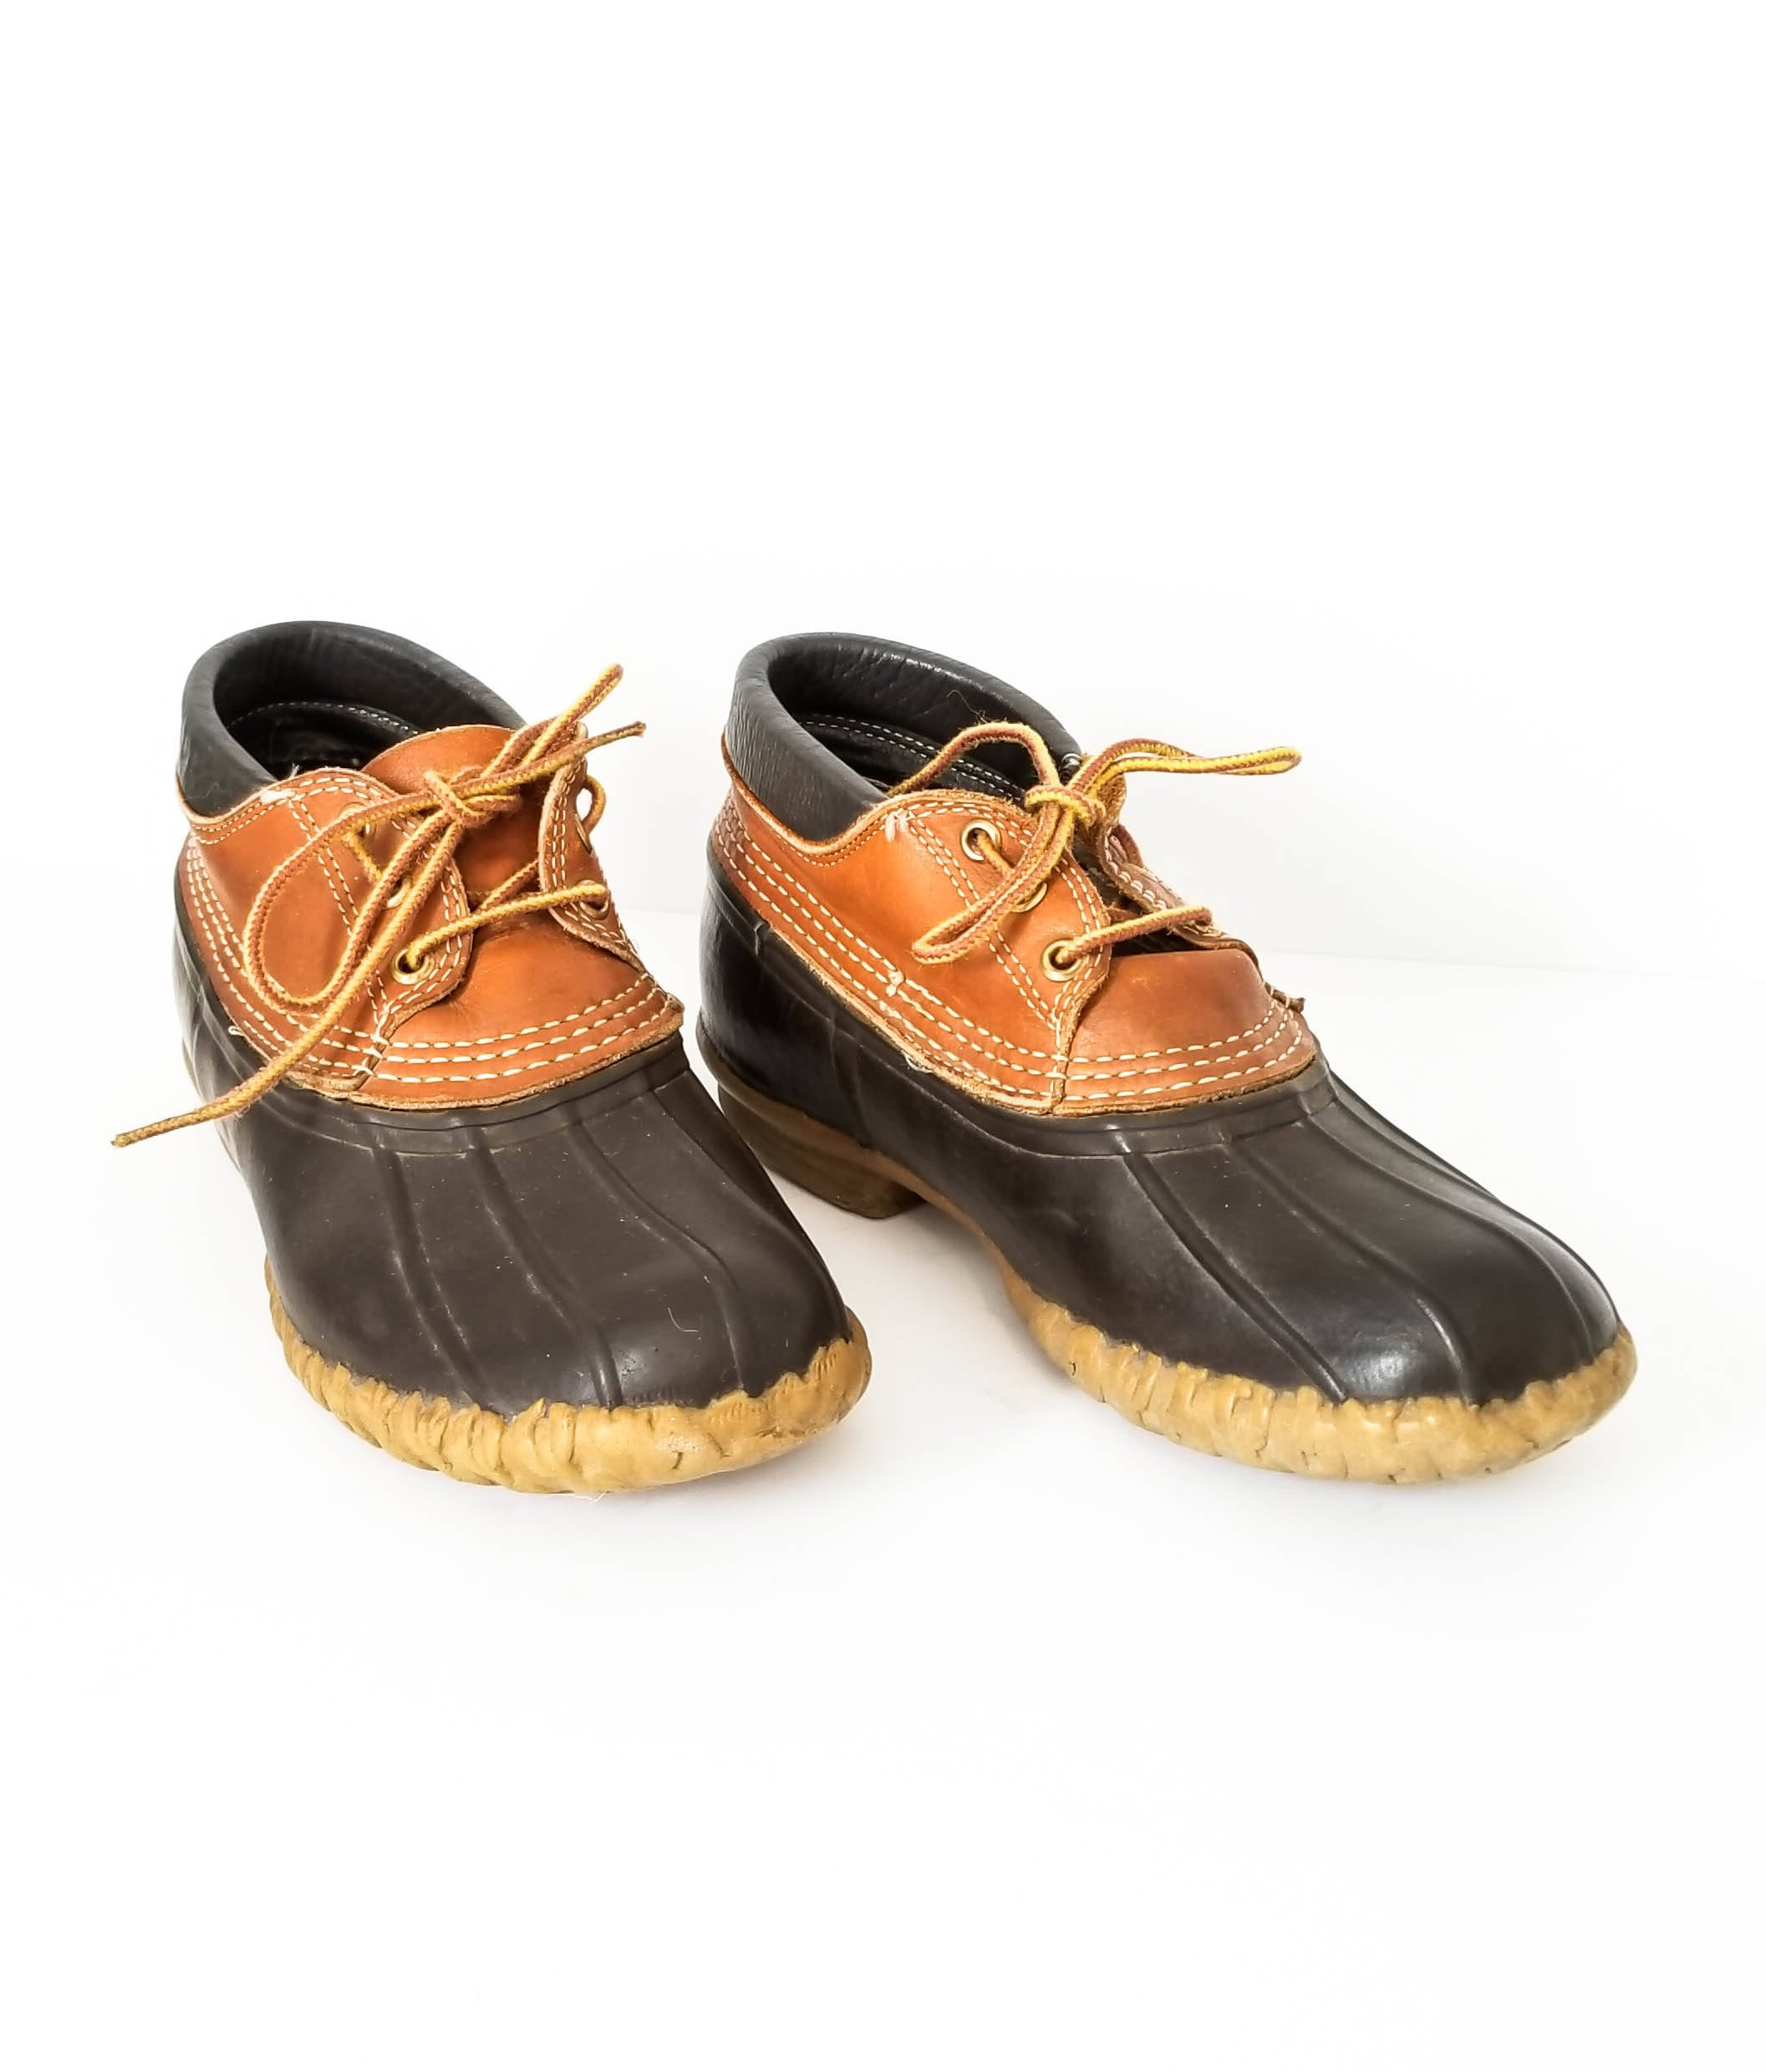 LL Bean Women's Duck Boots Size 8 Classic Bean Low Ankle